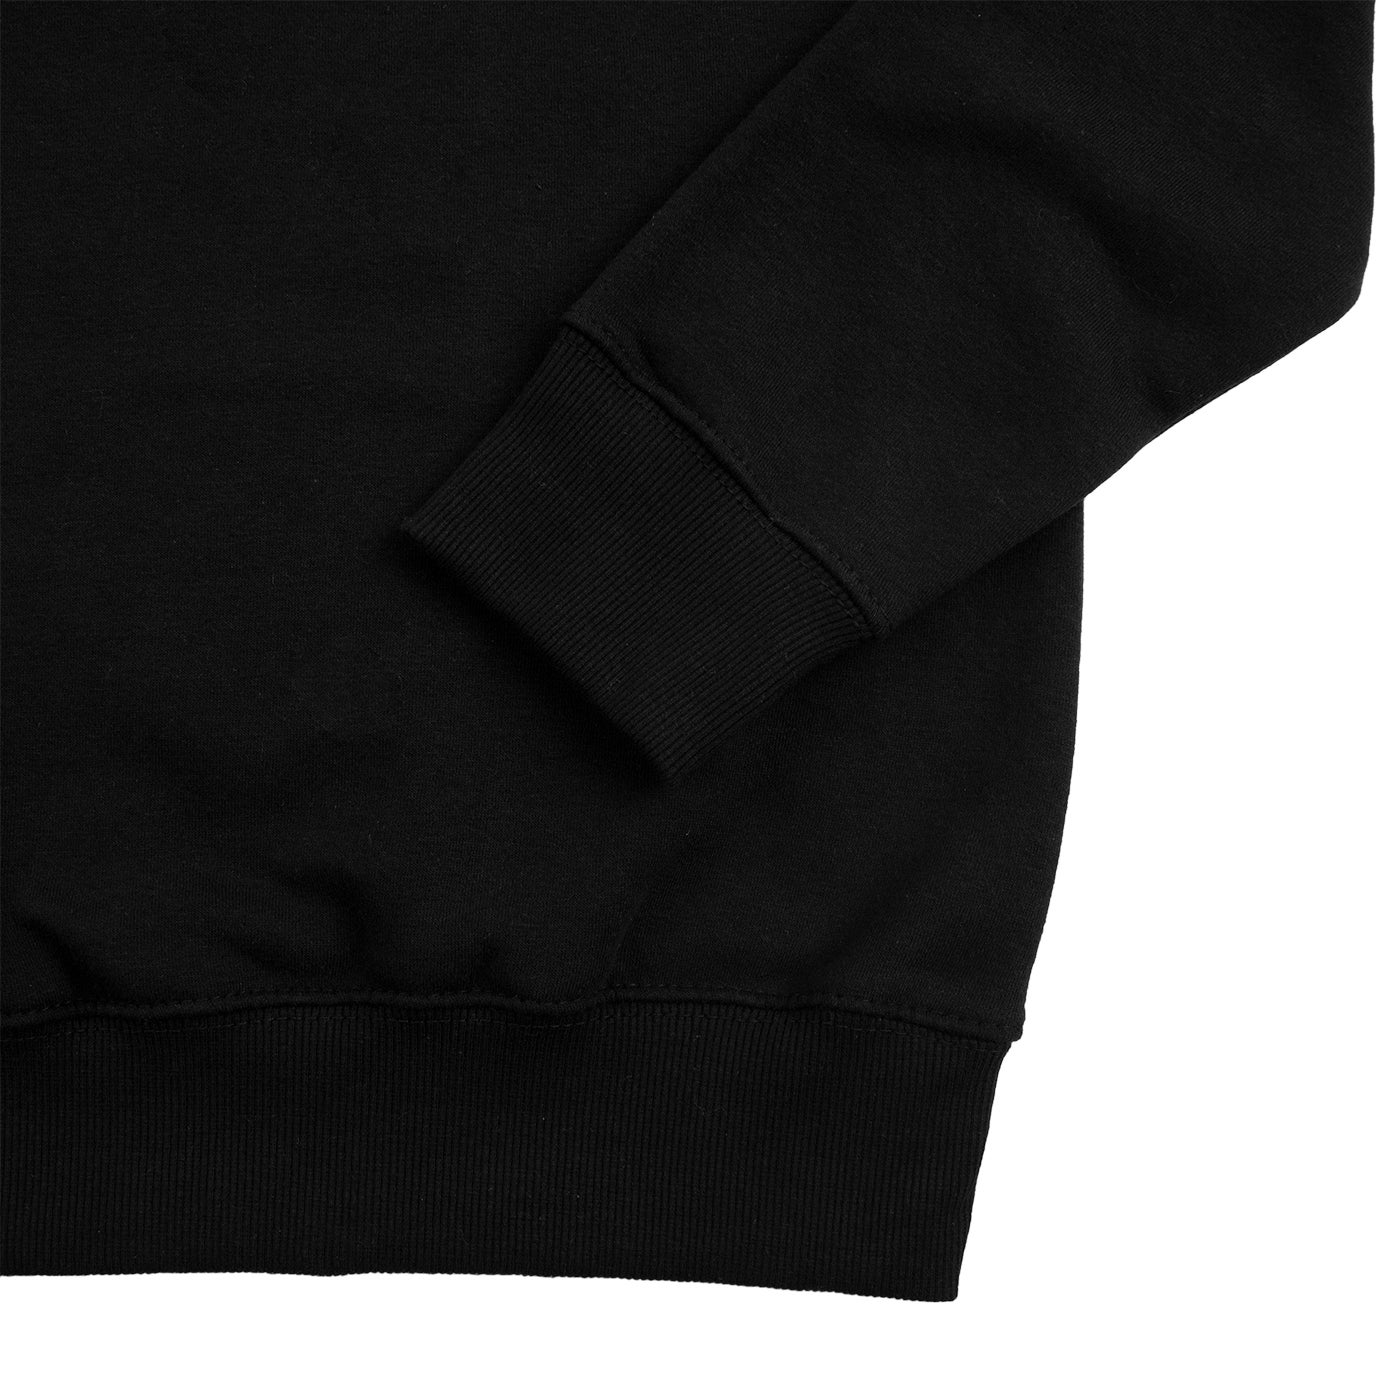 Image of PANTHER SWEATSHIRT - BLACK